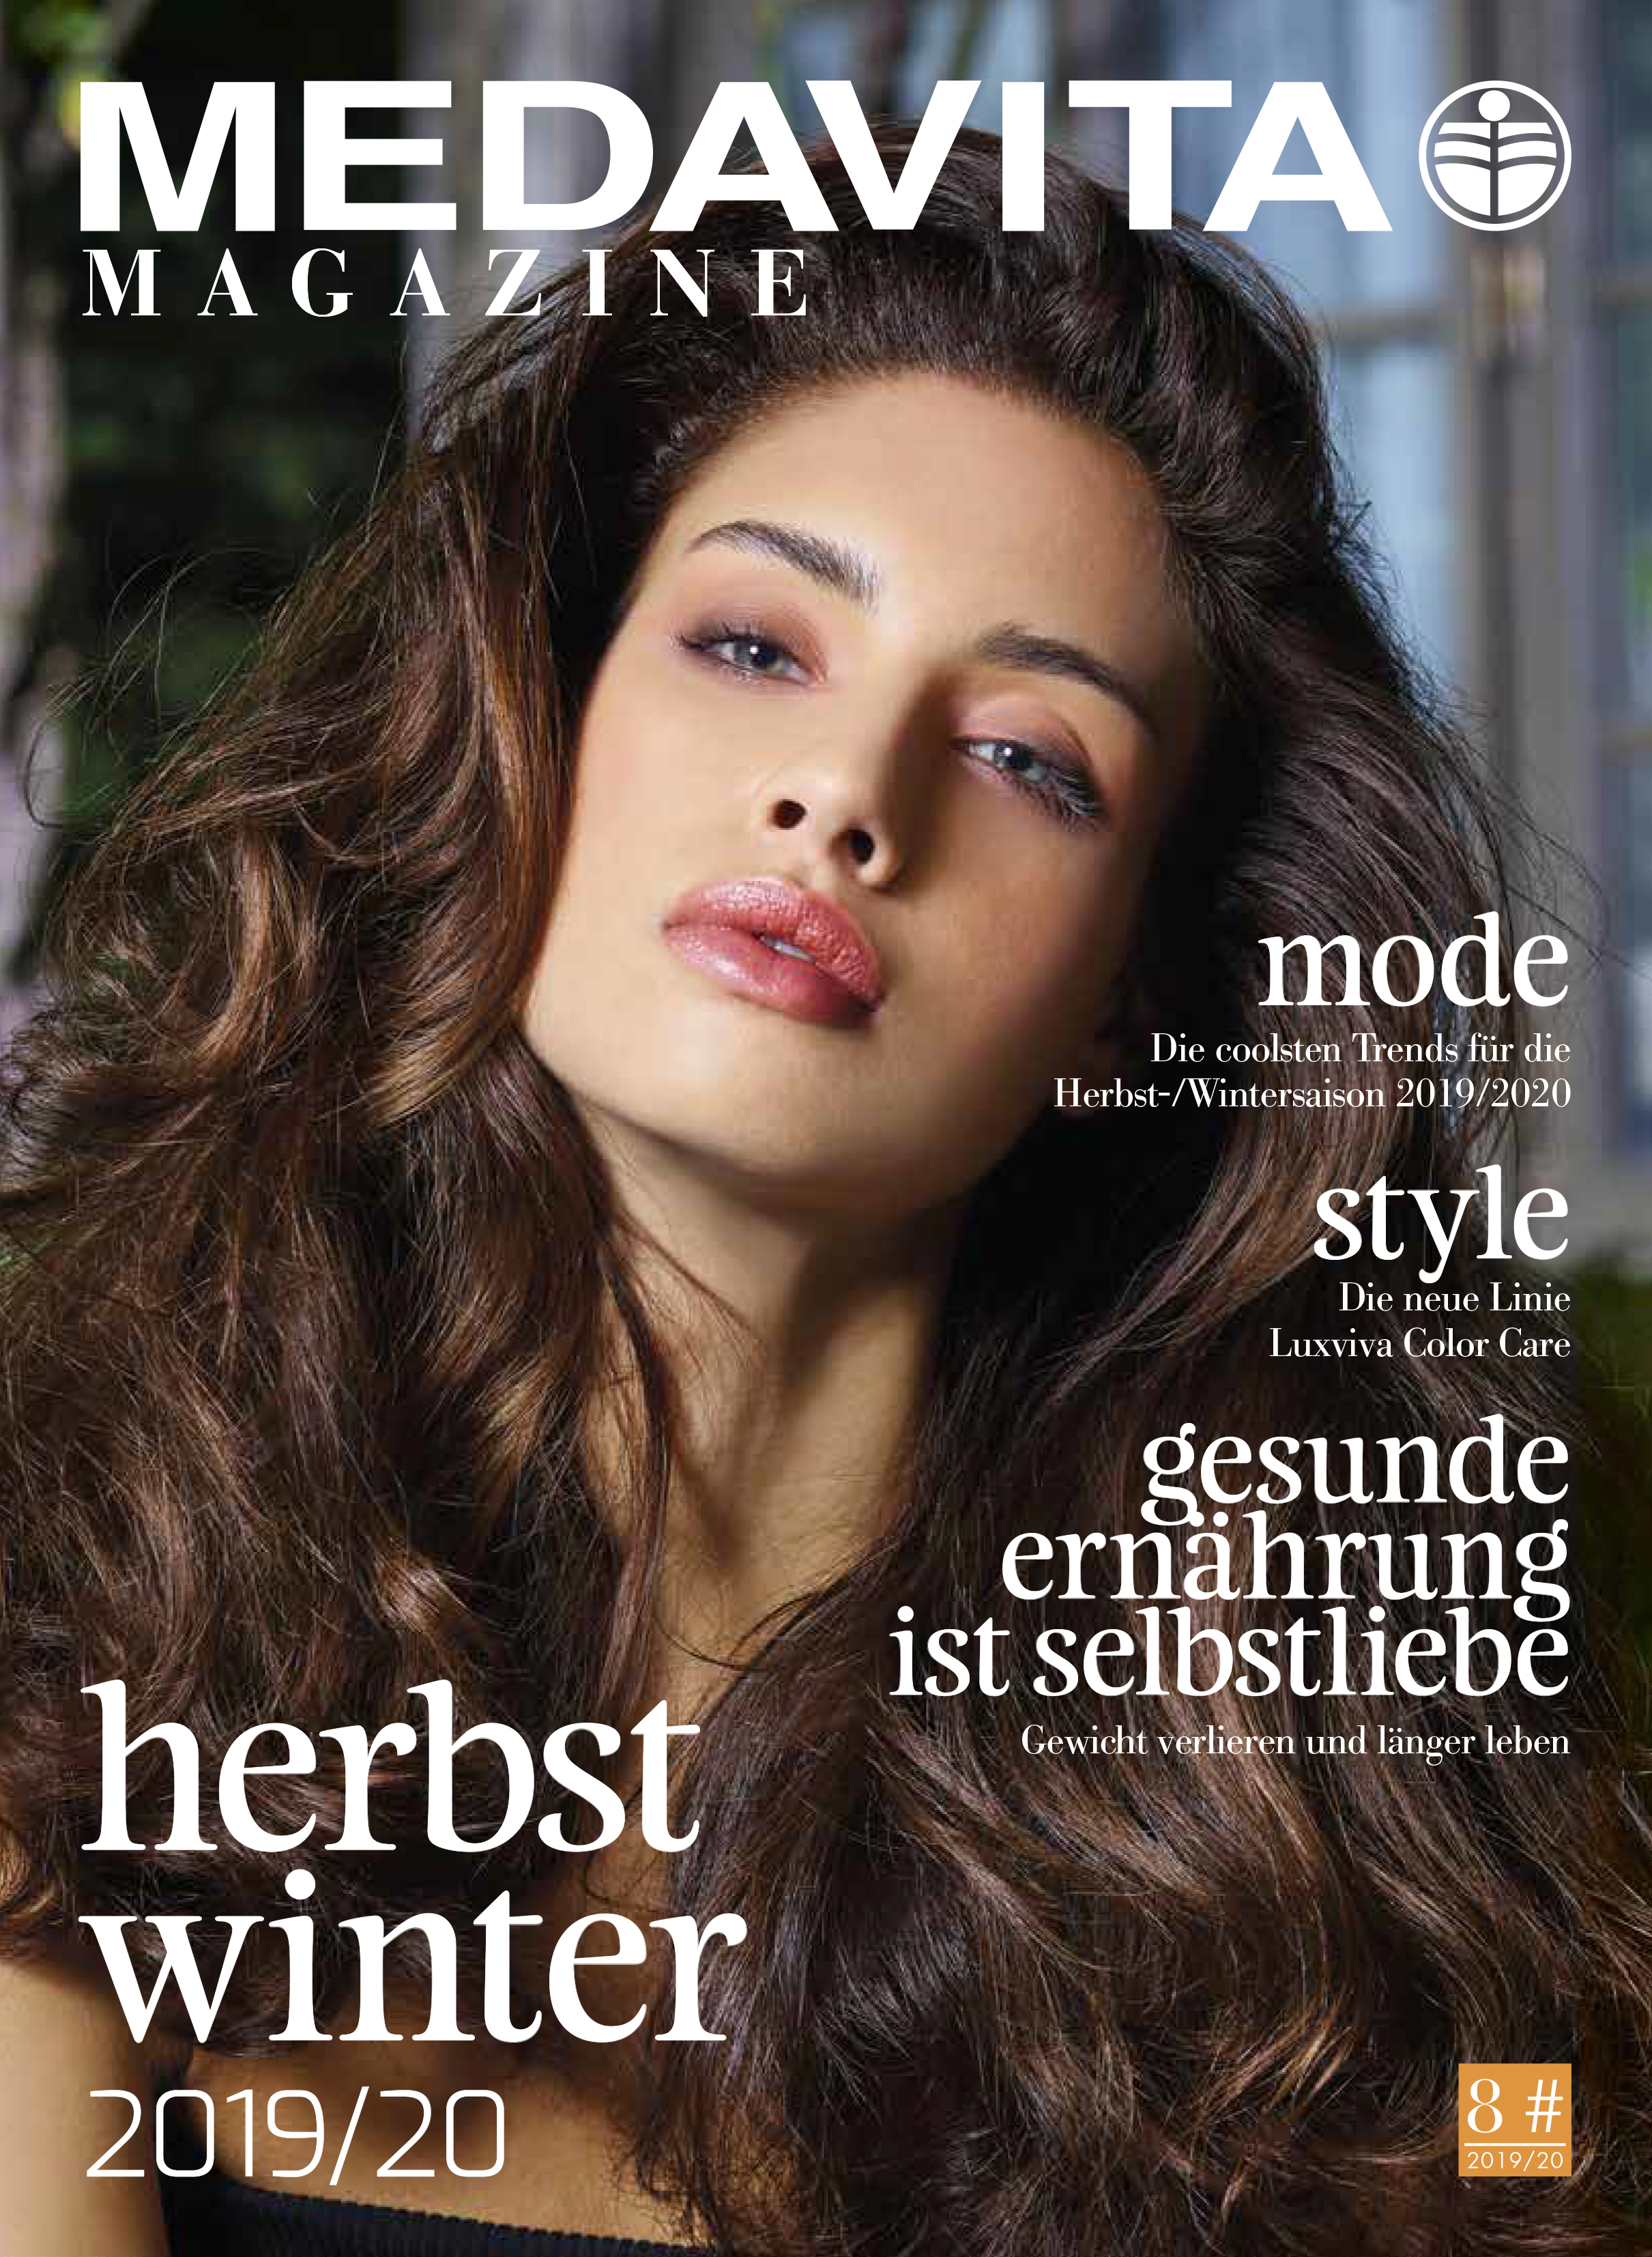 MAG Medavita Herbst Winter Cover2019-2020